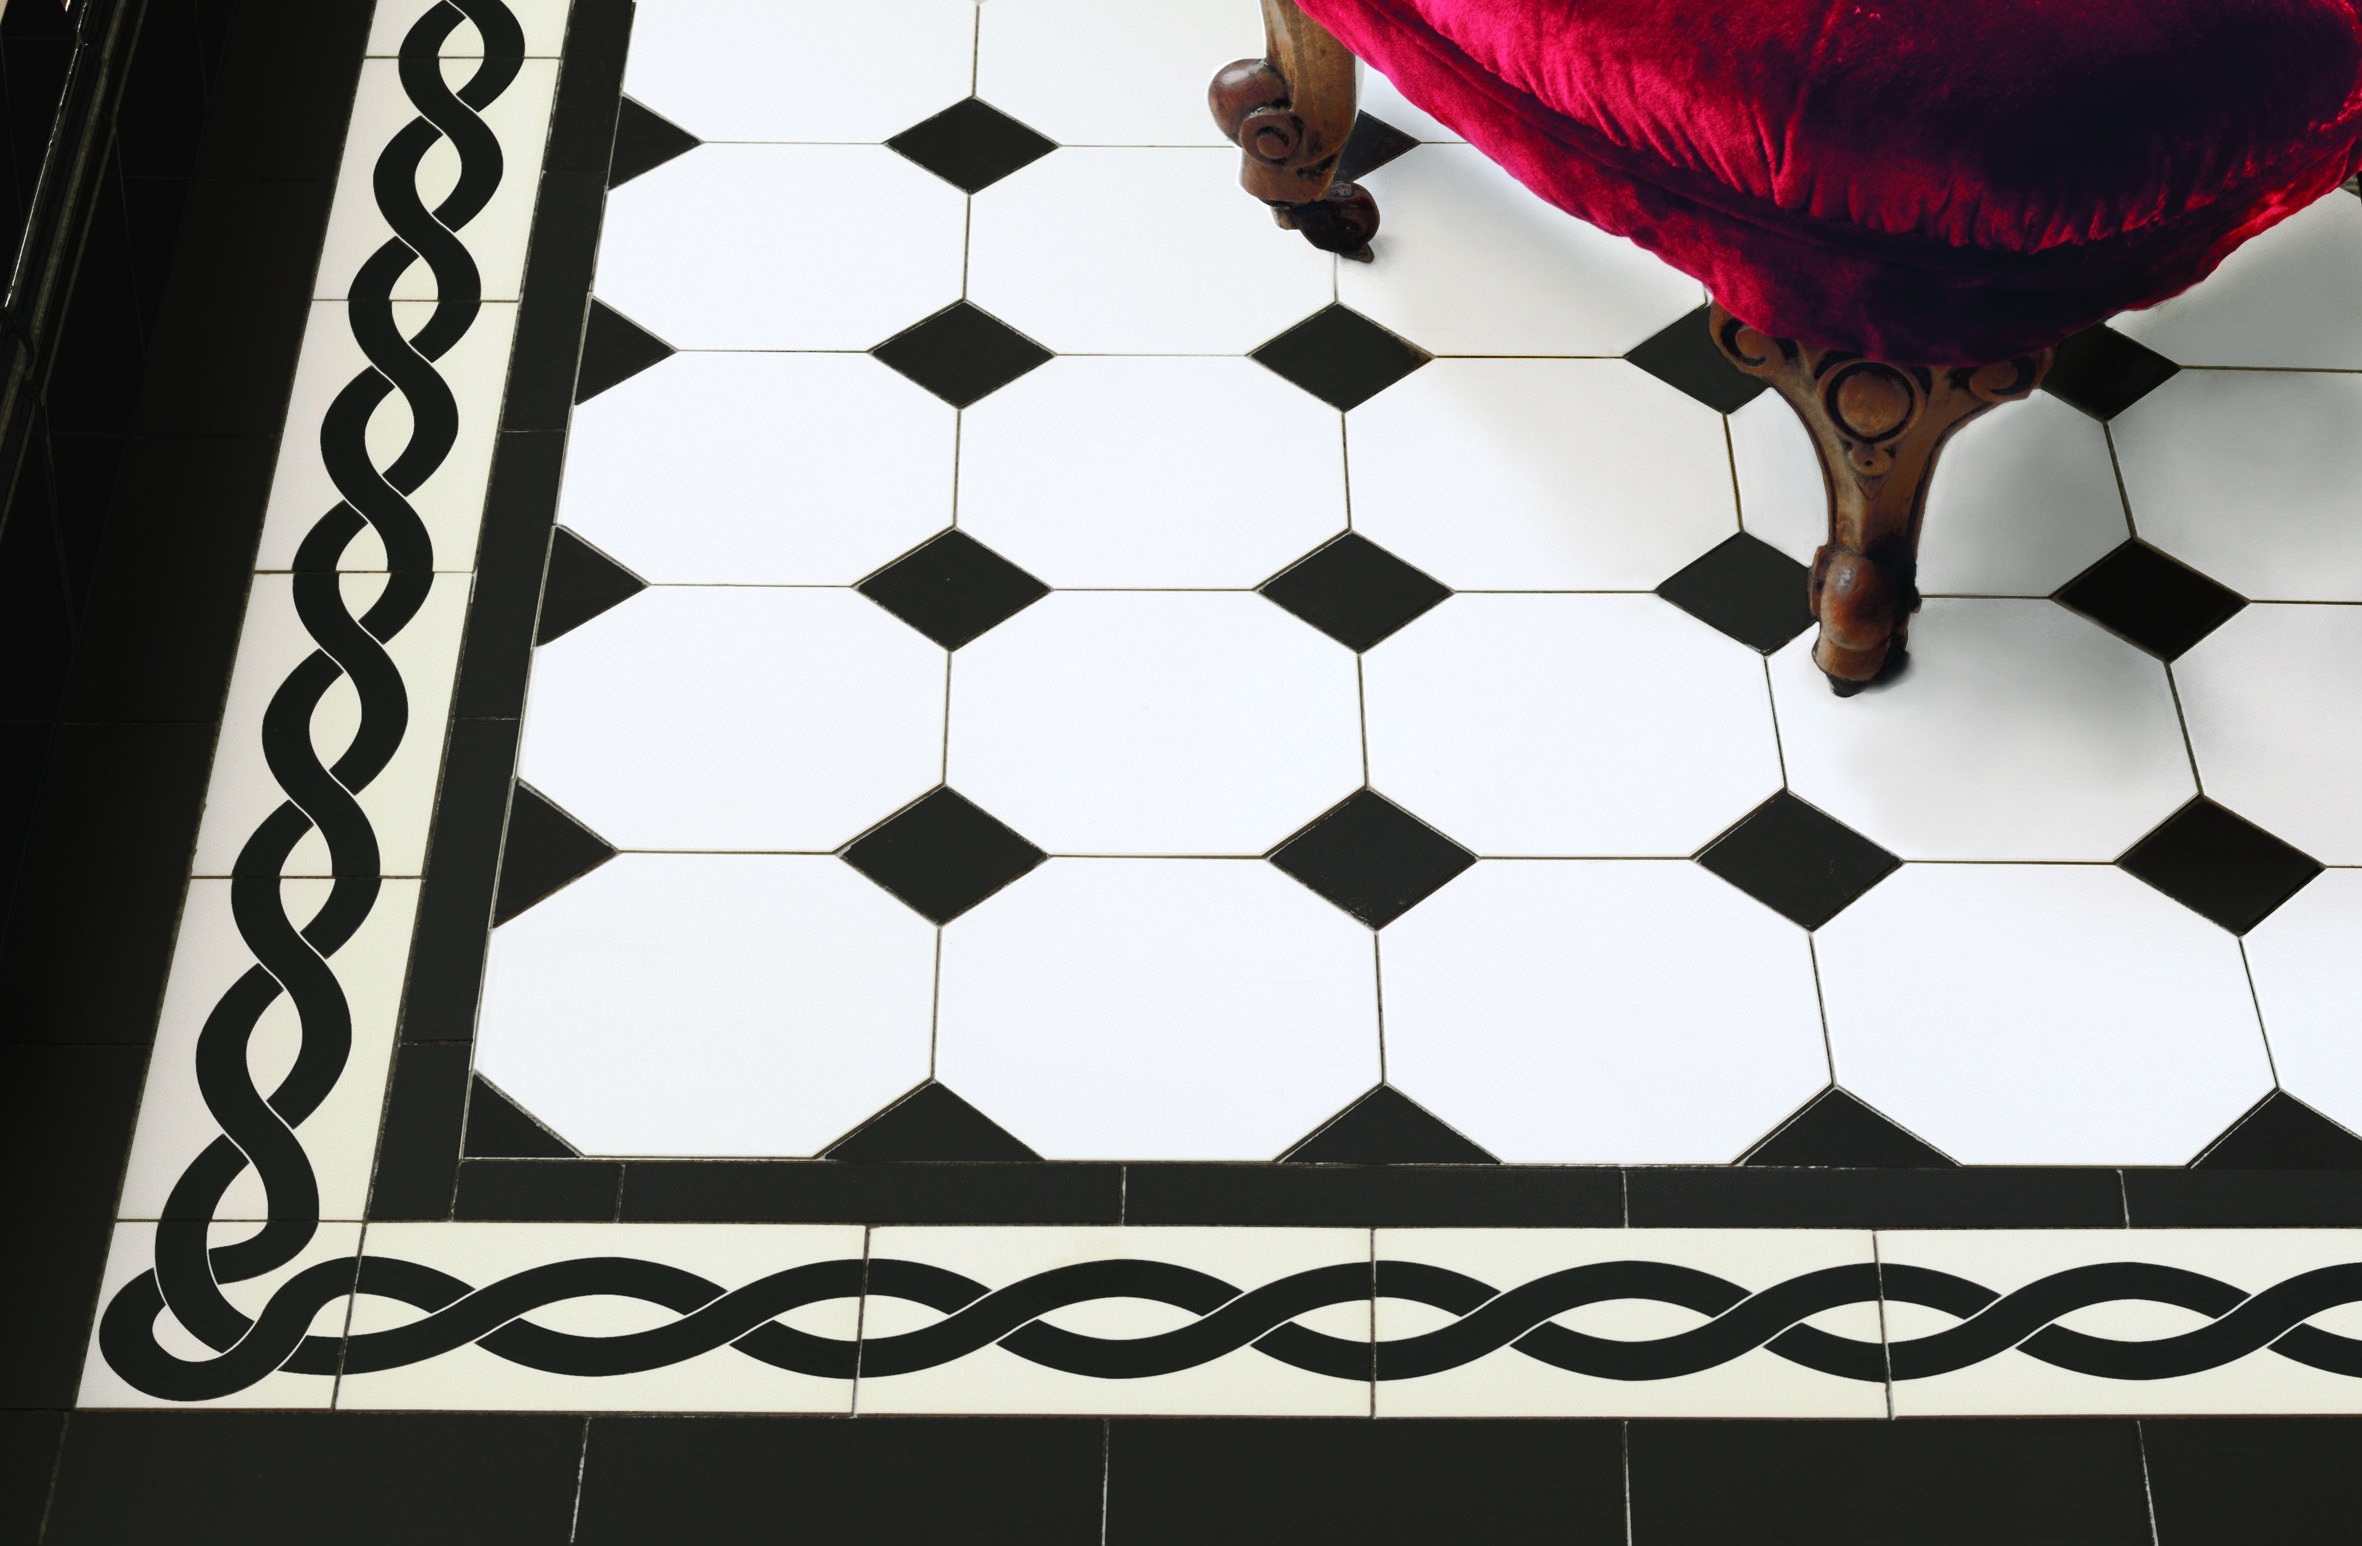 Victorian Floor Tiles The York Pattern In Black And White With A